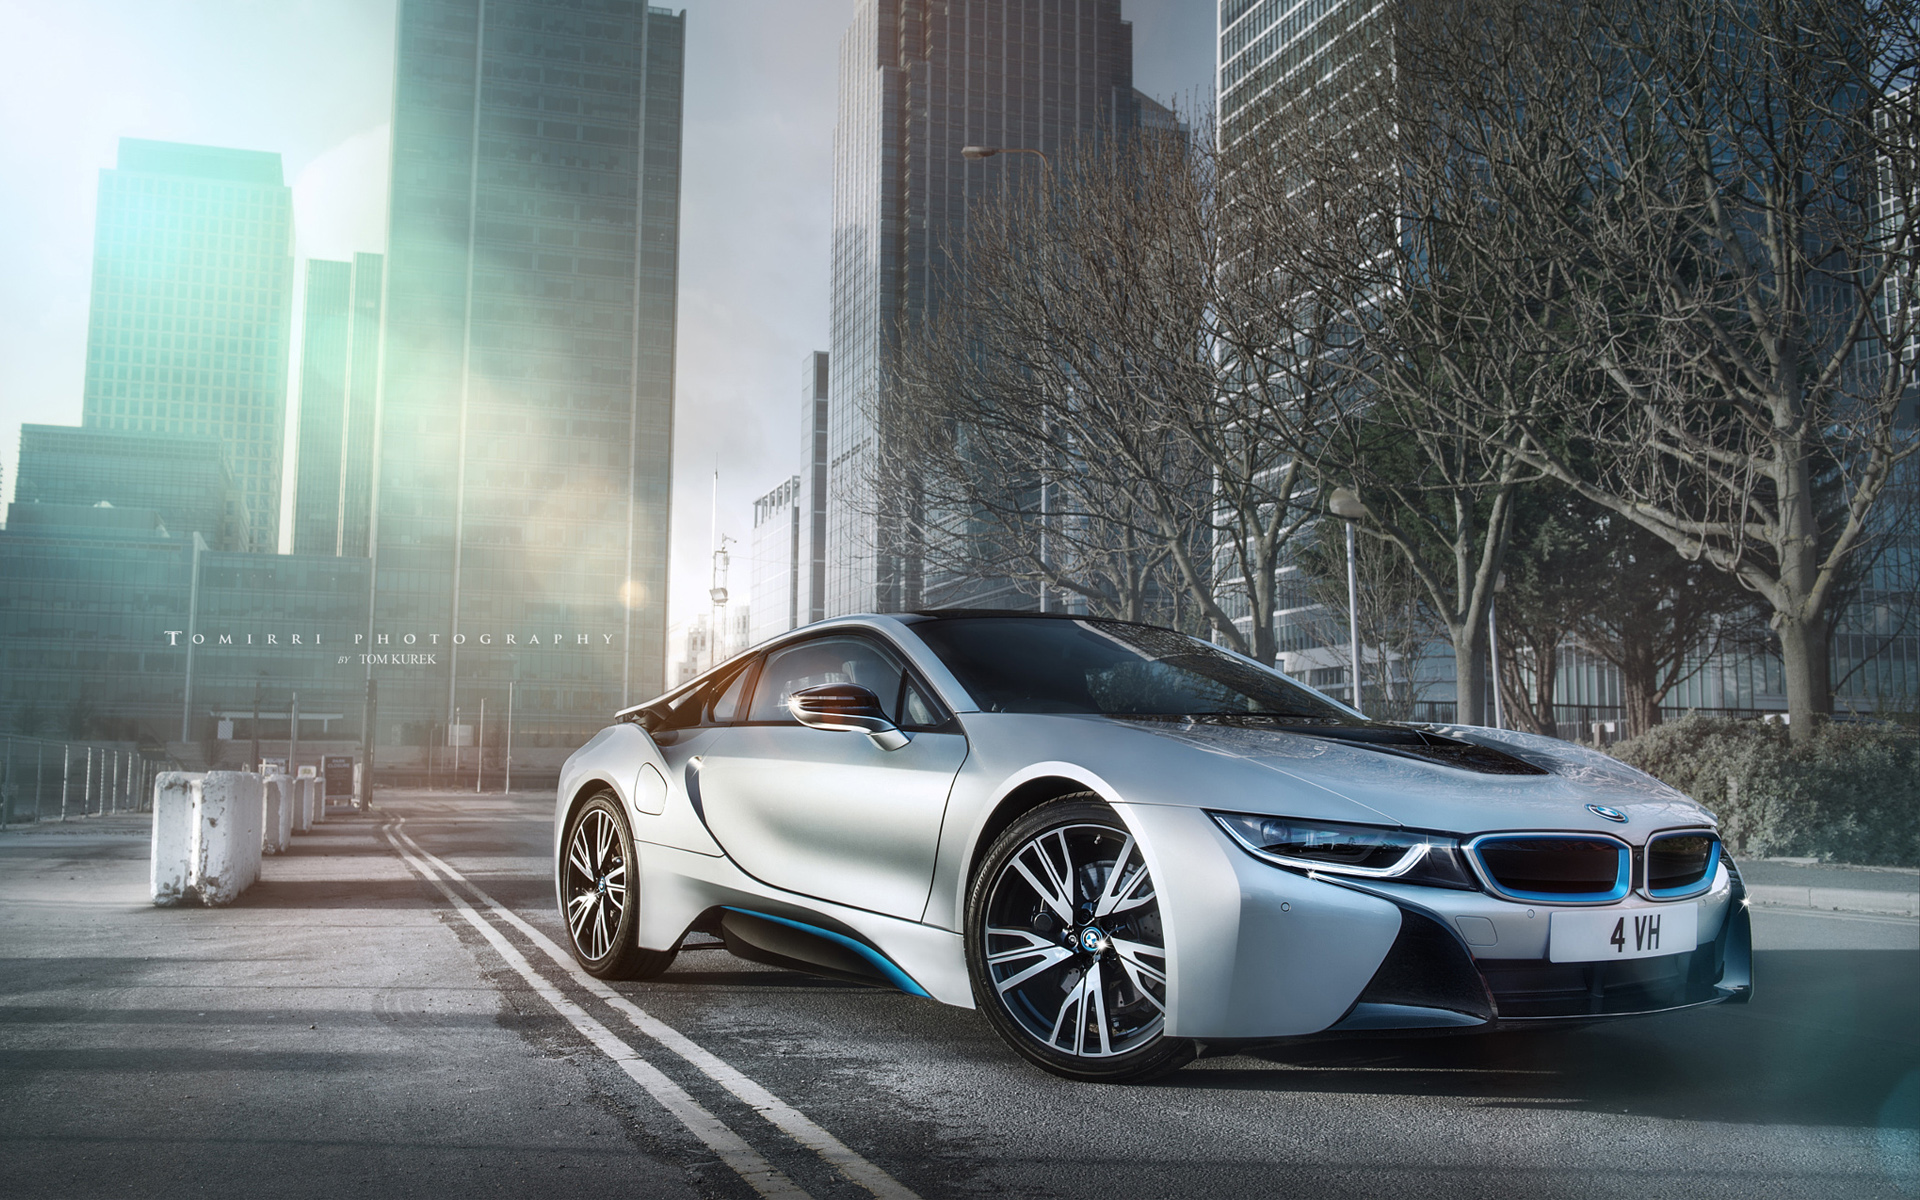 Bmw I Hd Wallpapers Backgrounds Wallpaper Abyss Bmw Bmw I8 Car Wallpaper Hd 1920x1200 Wallpaper Teahub Io